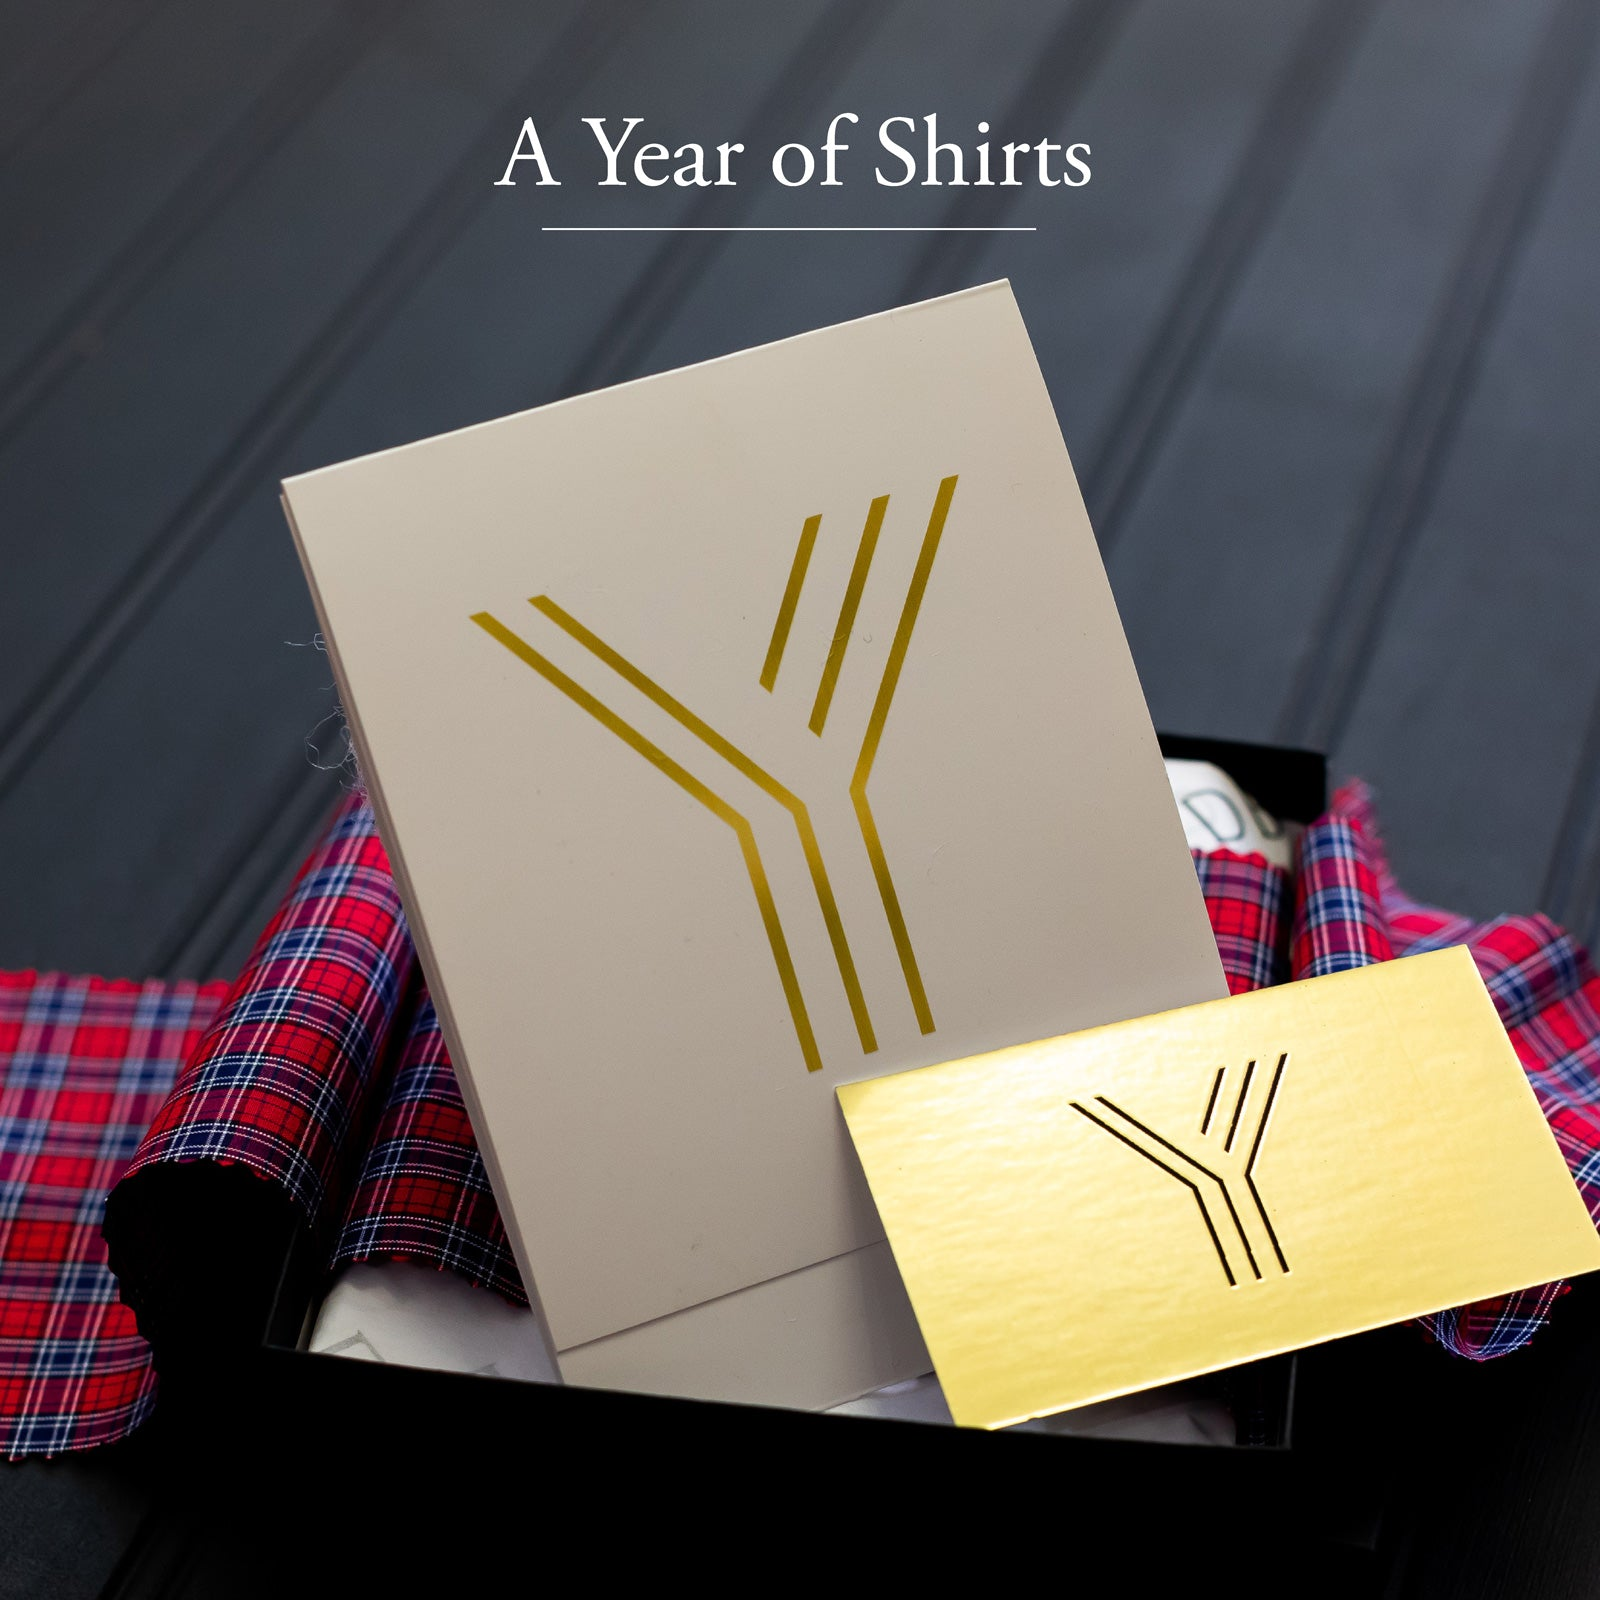 The Year Of Shirts